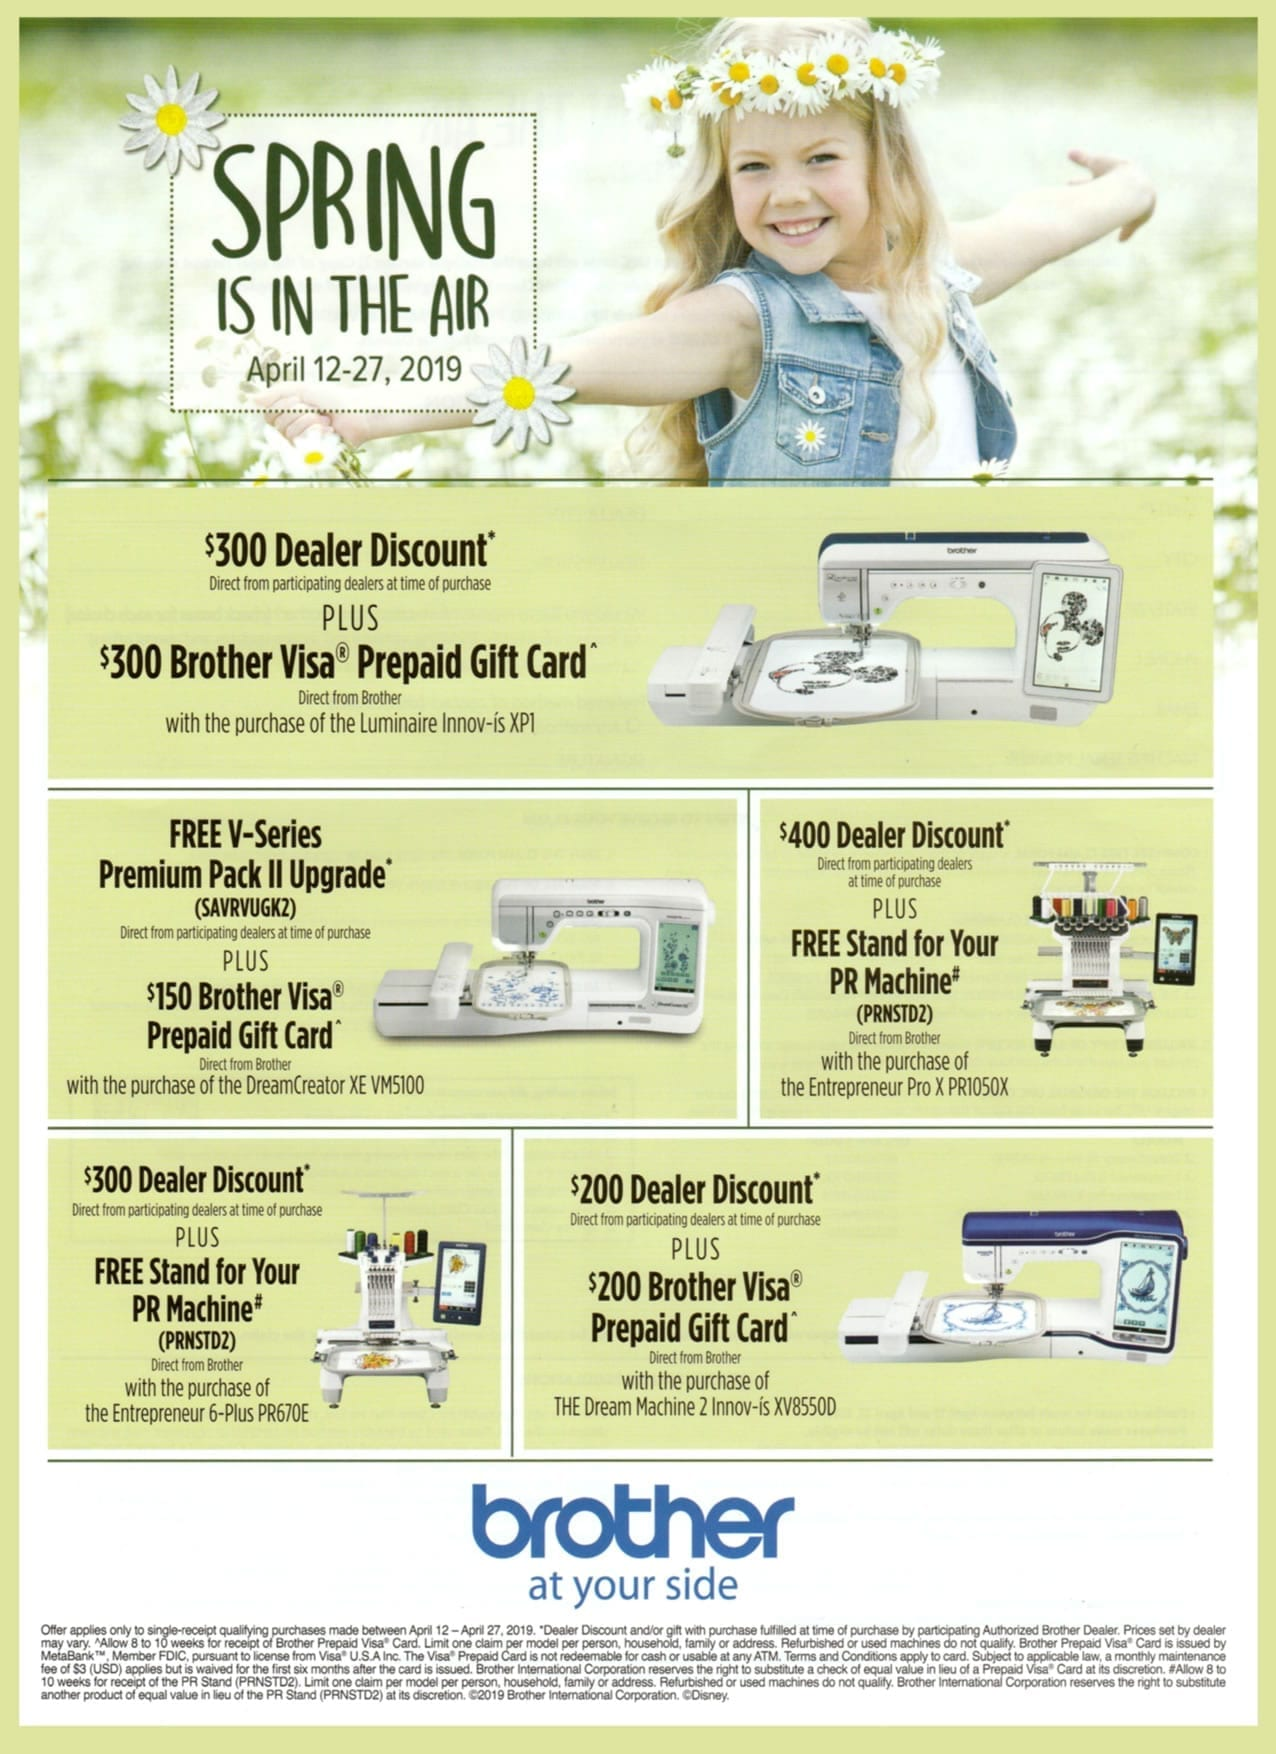 Brother Coupons - Spring Is In The Air